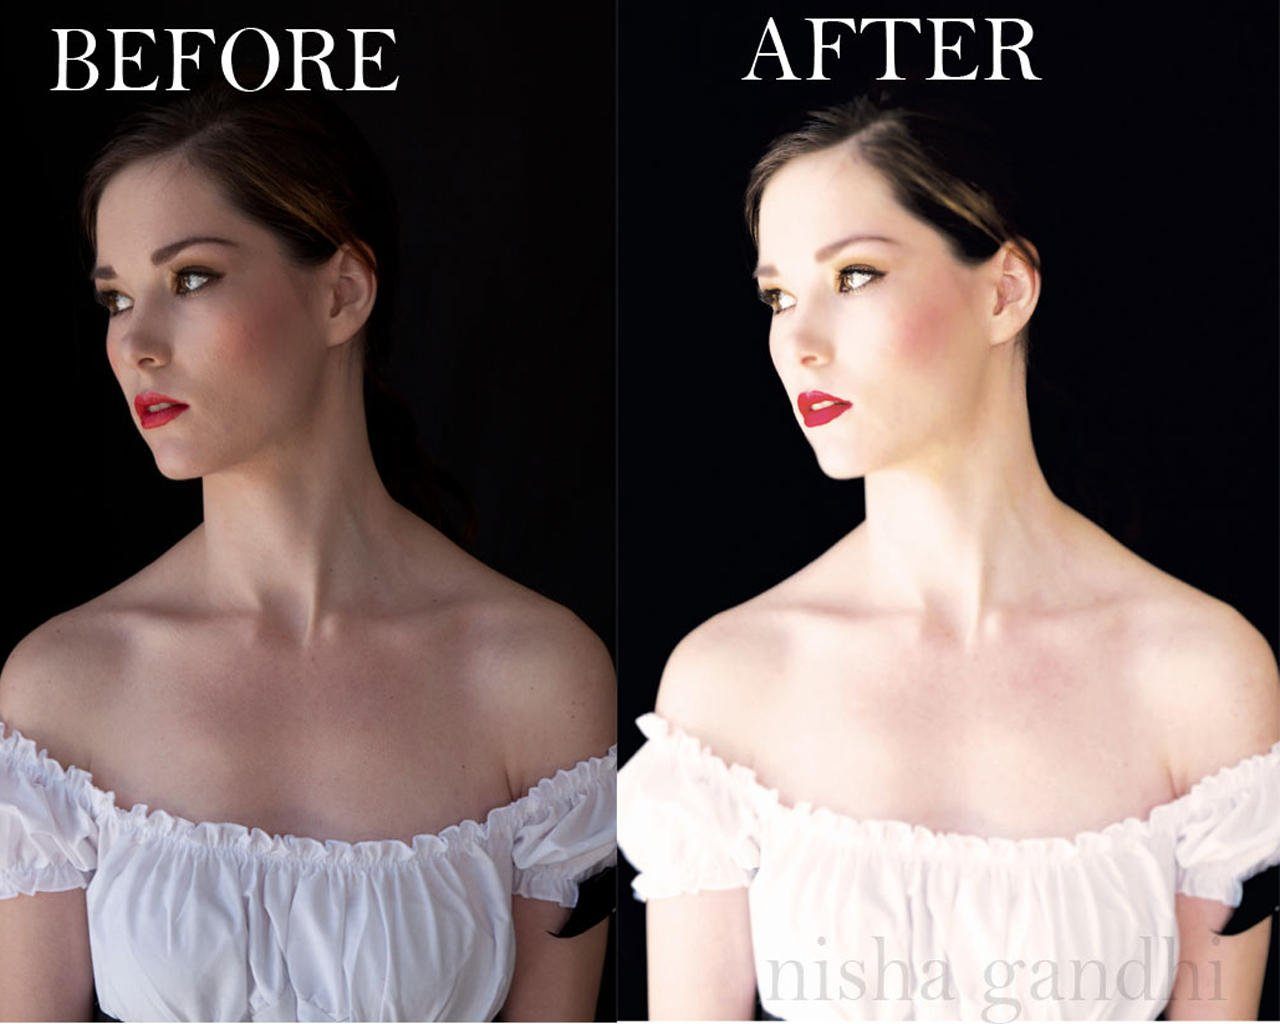 Beauty Retouching for Print/Magazines by nishagandhi - 109997